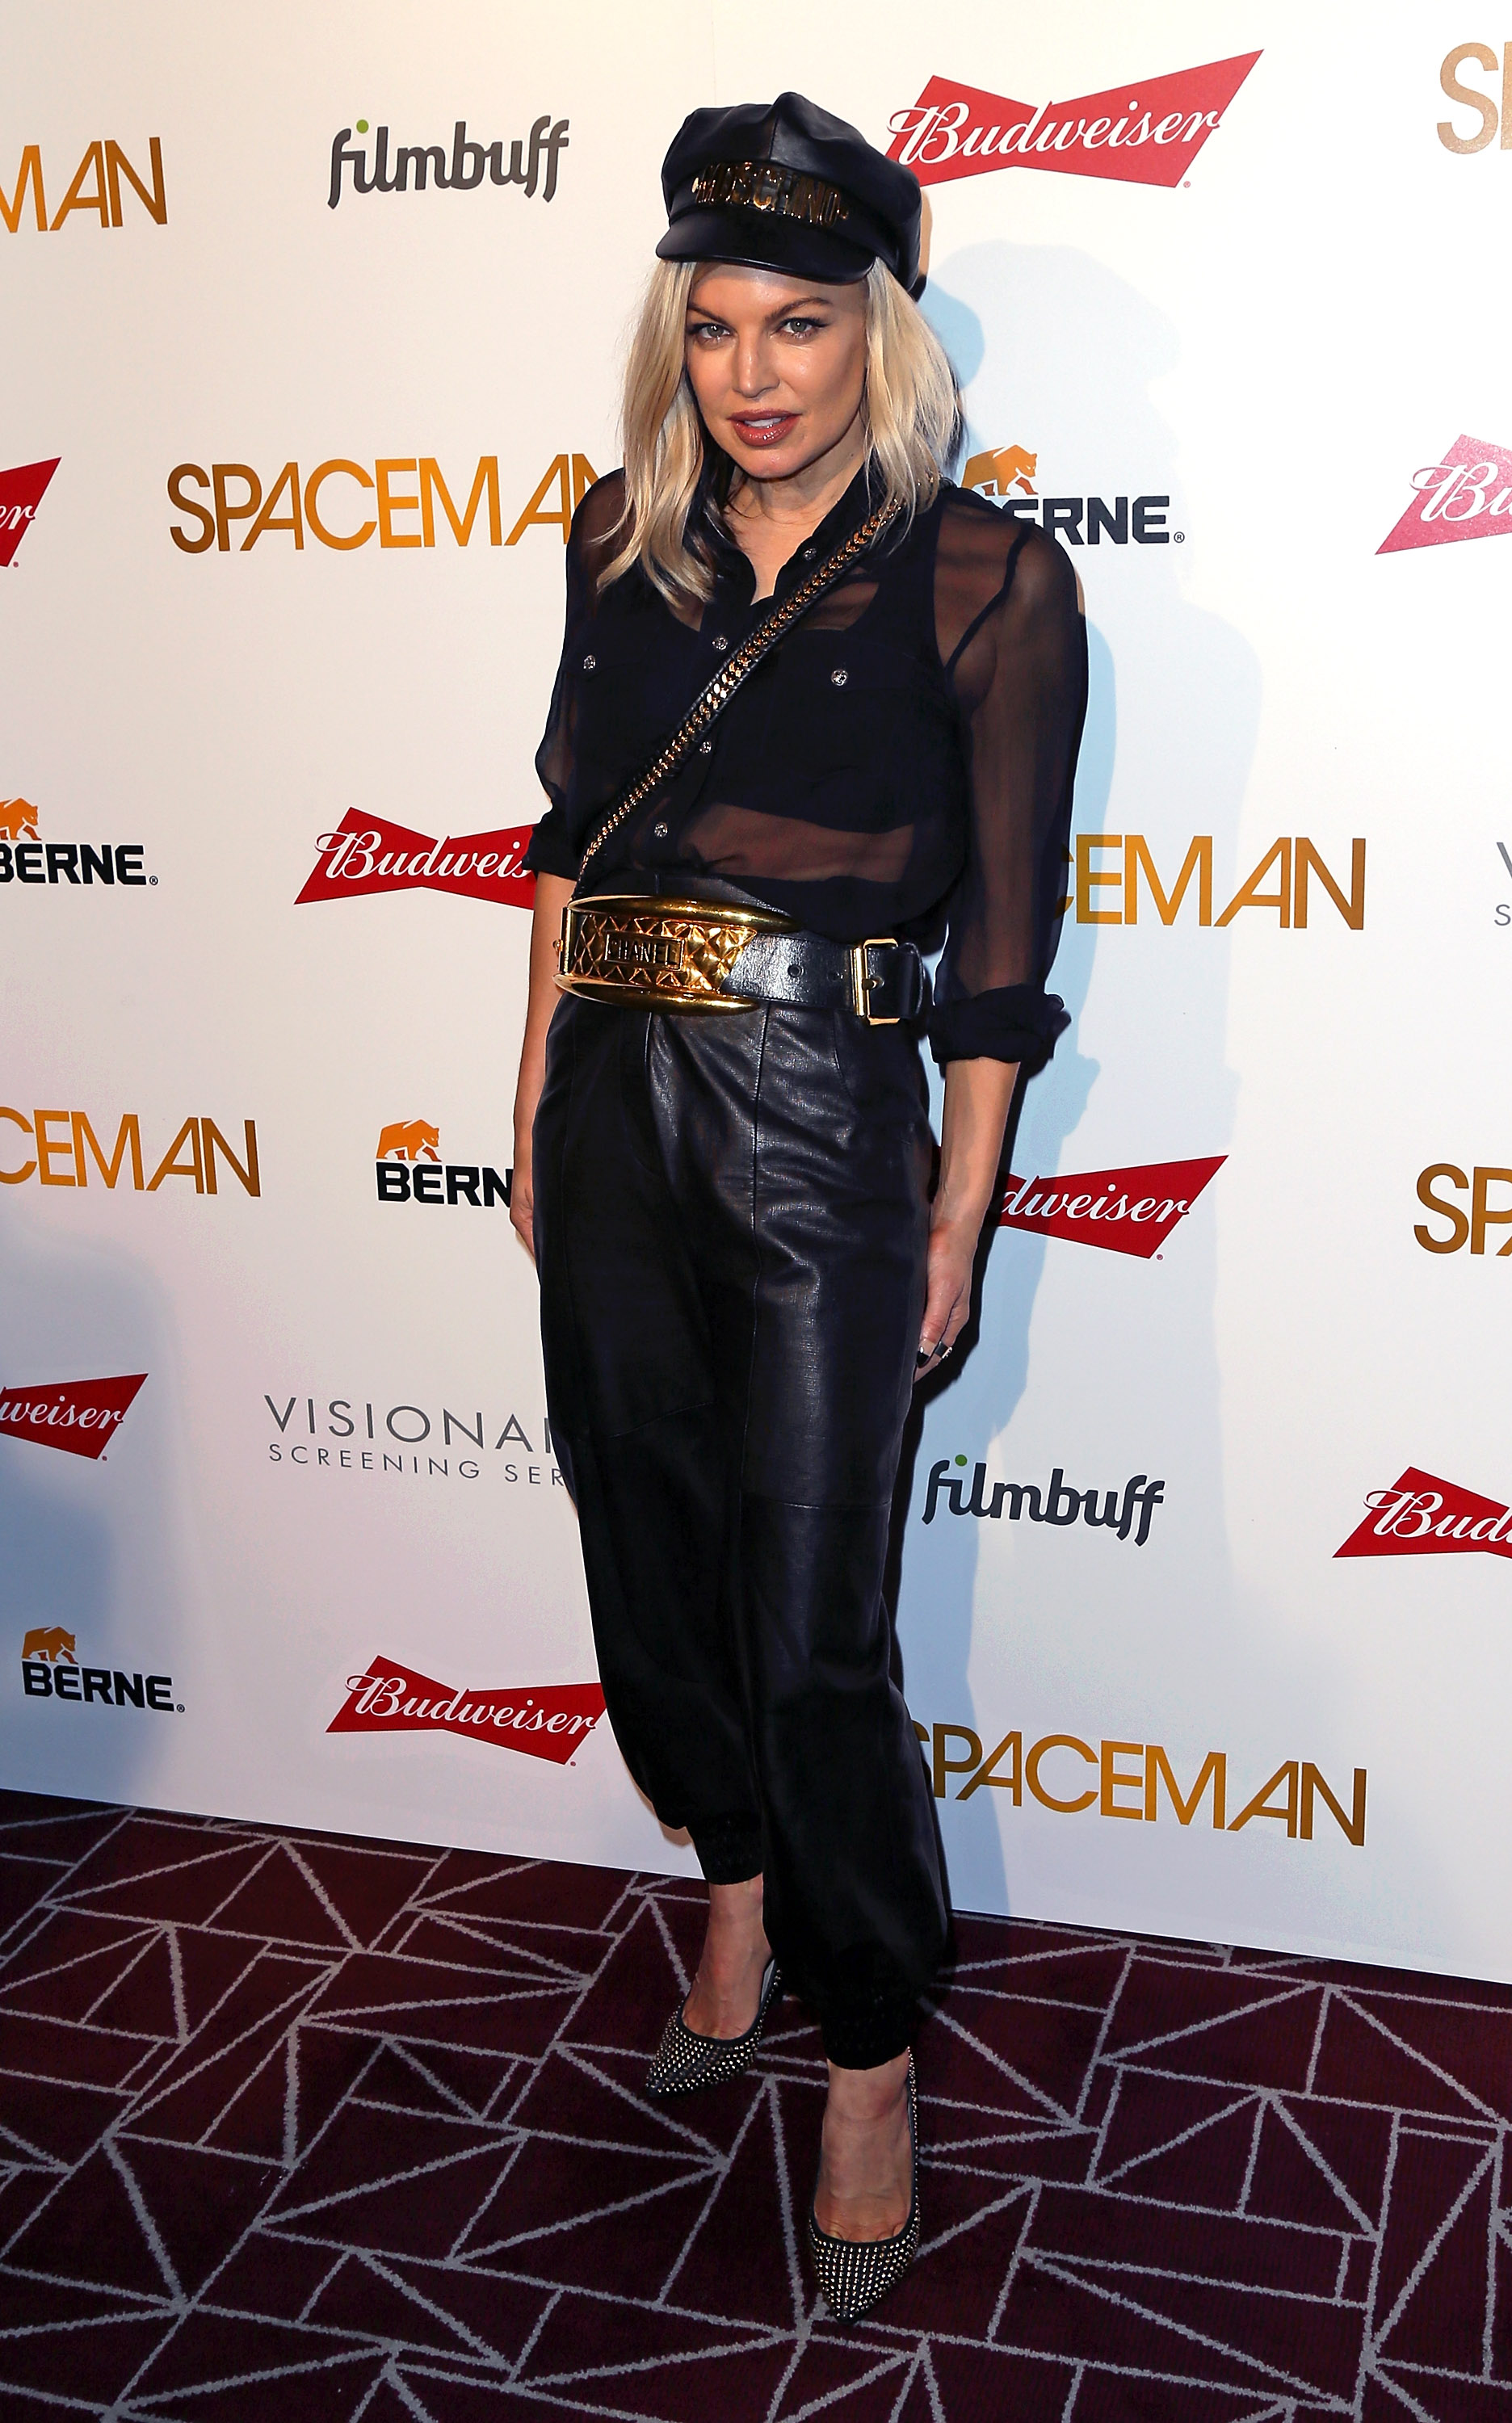 Fergie attends the Los Angeles premiere of Spaceman